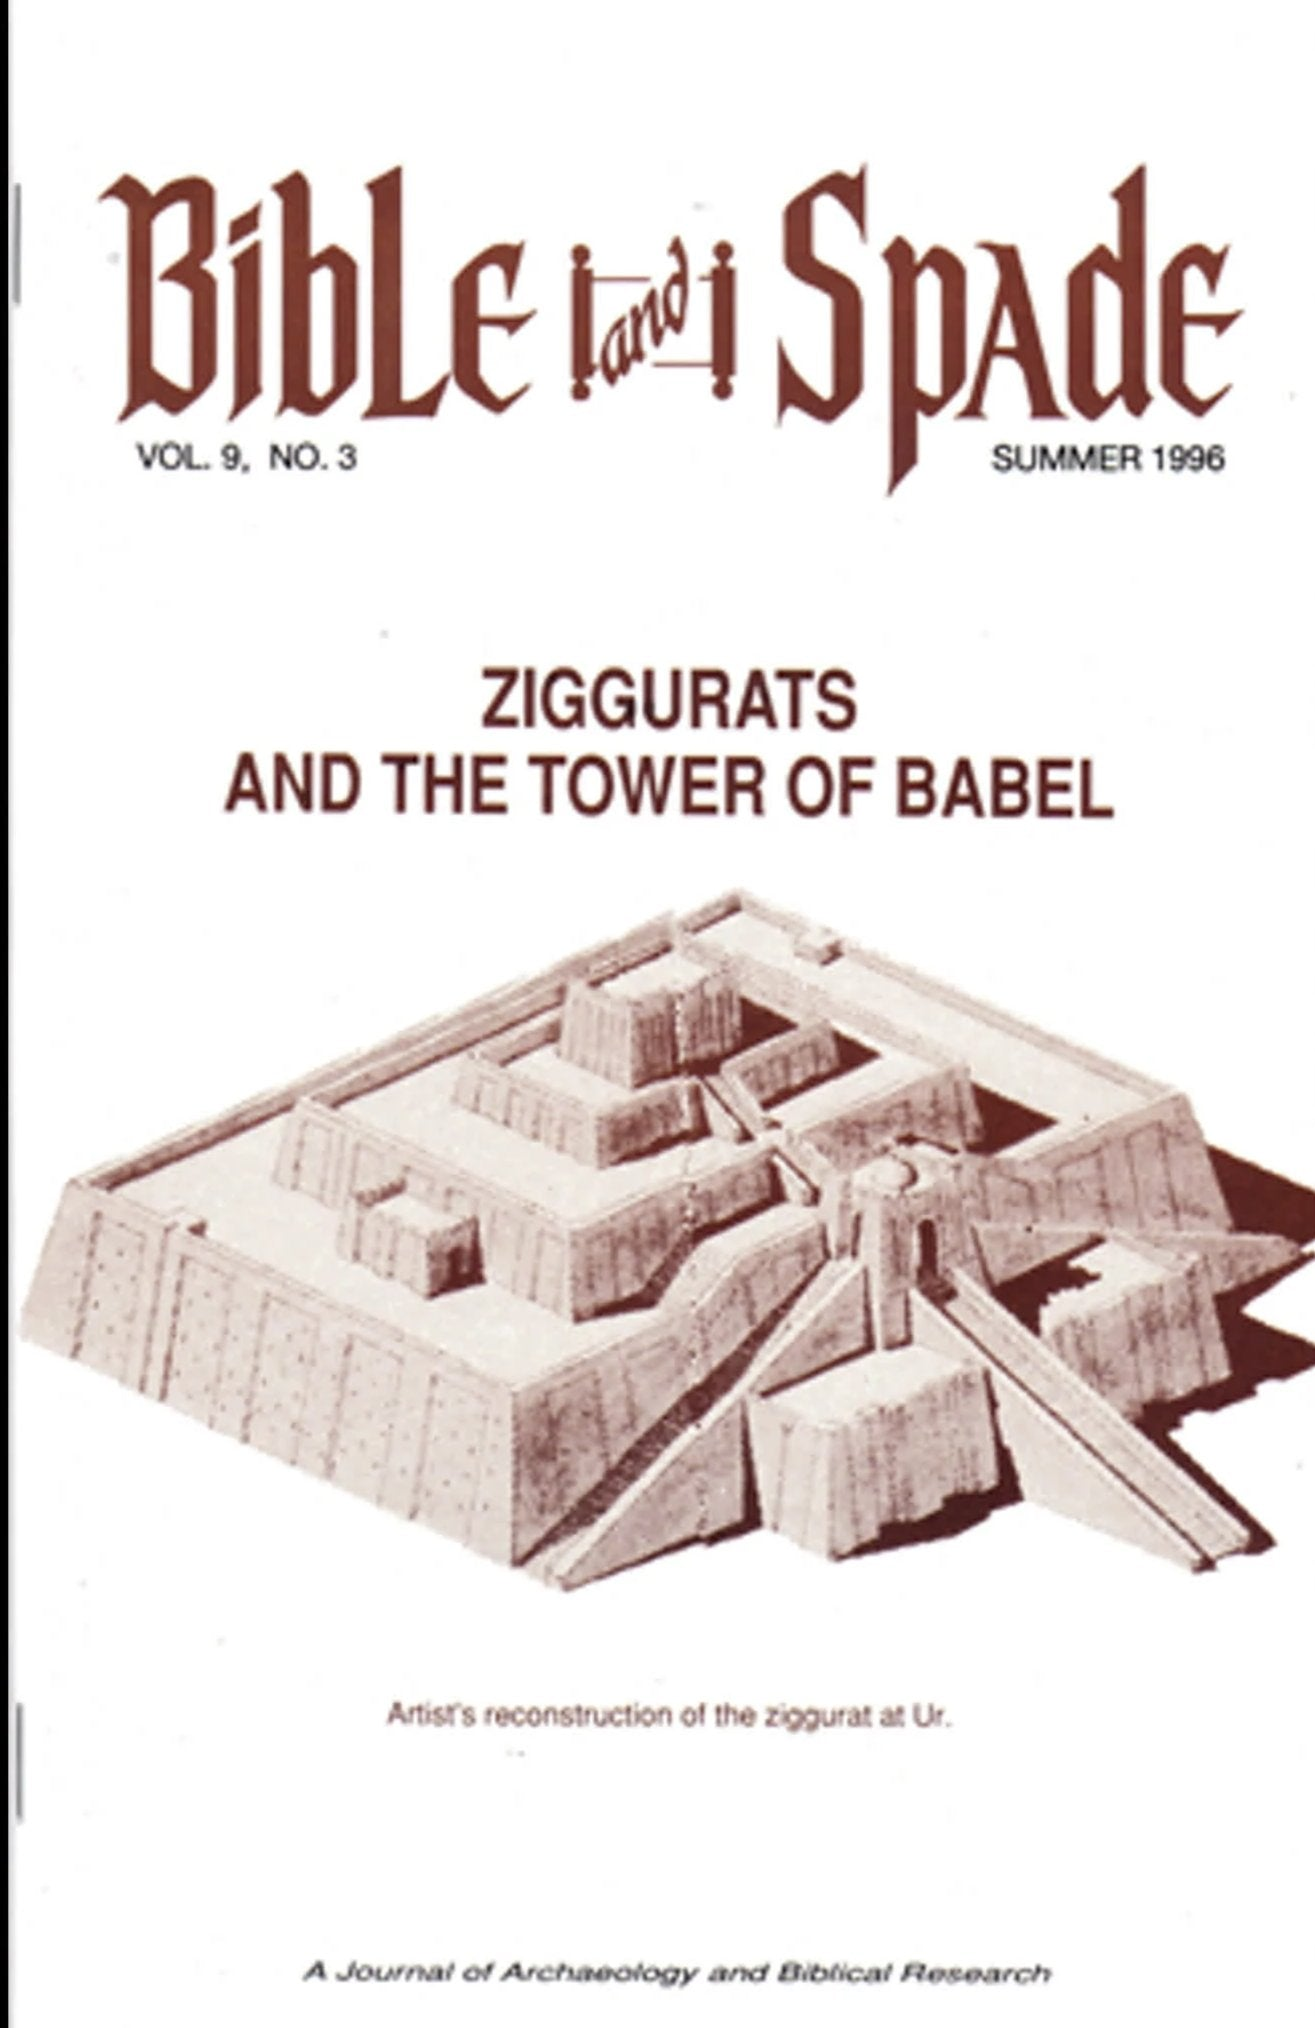 Four issues of BIBLE and SPADE produced in 1996